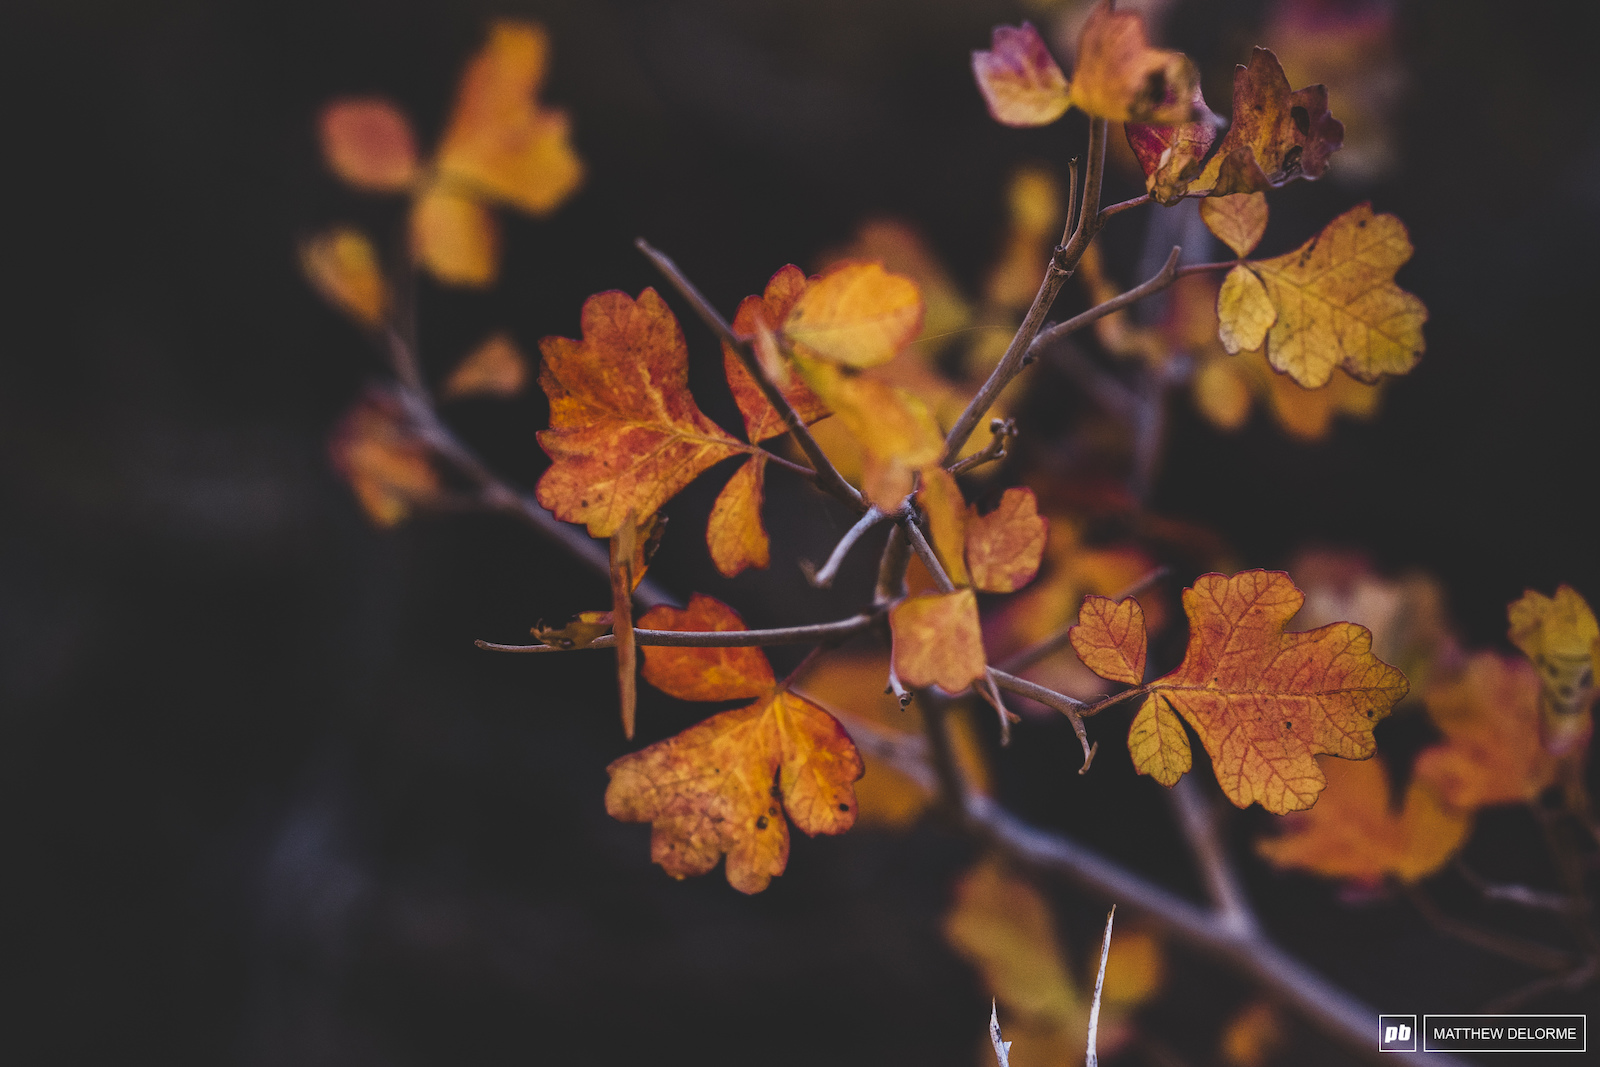 Textures of fall in the desert.